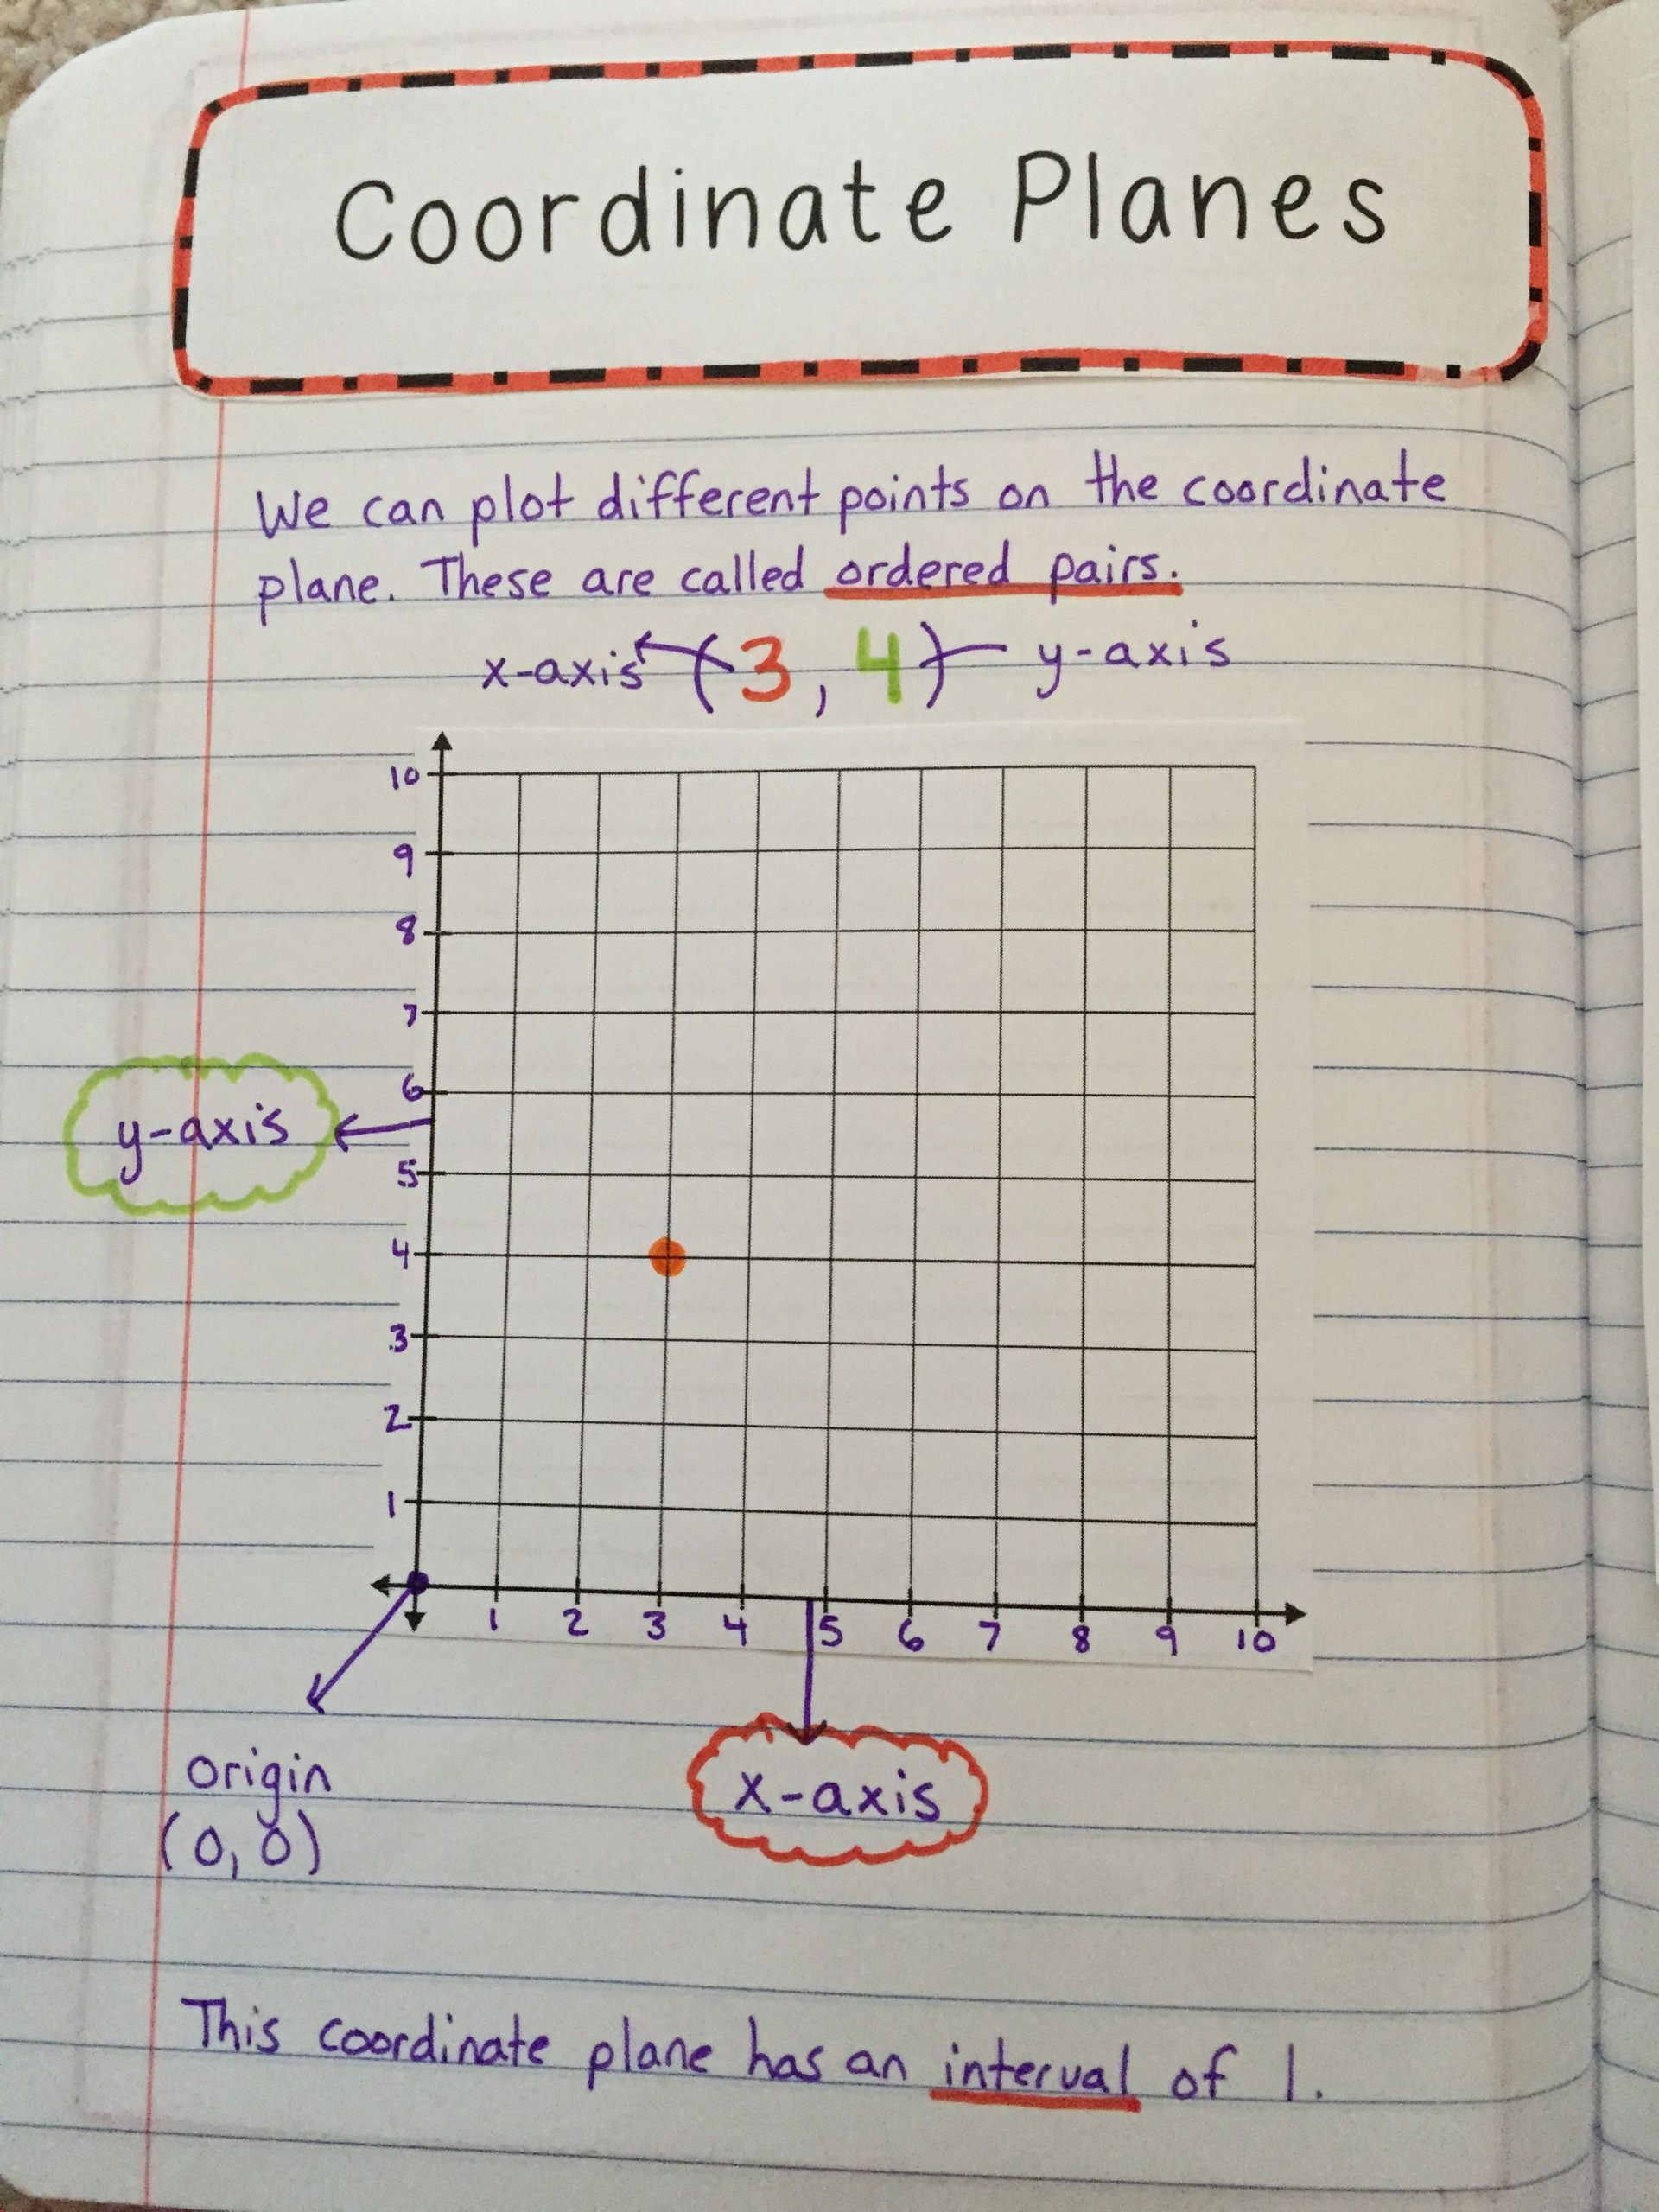 Coordinate Grid Worksheet 5th Grade Pin by Cara Beth Mcleod On 5th Grade Math In 2020